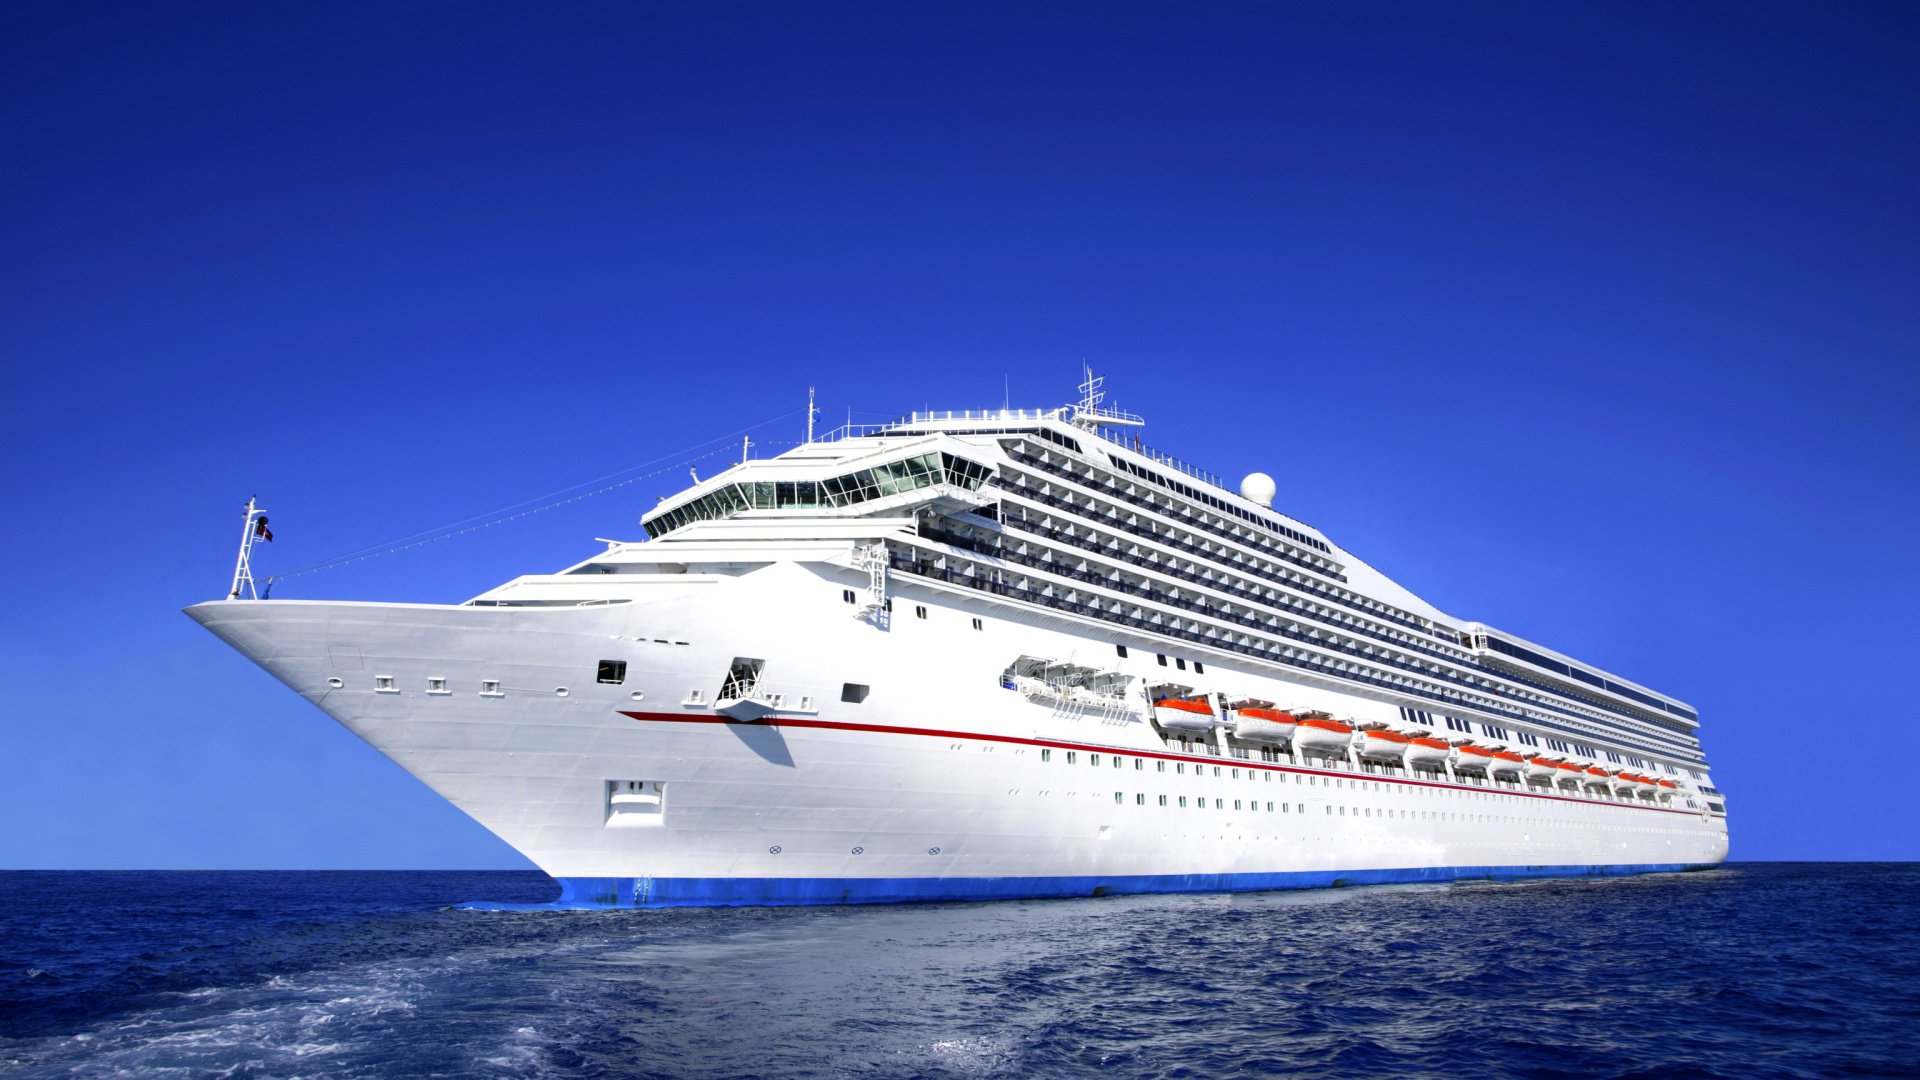 Cruise Ship Wallpaper for Desktop 1920x1080 Full HD 1920x1080